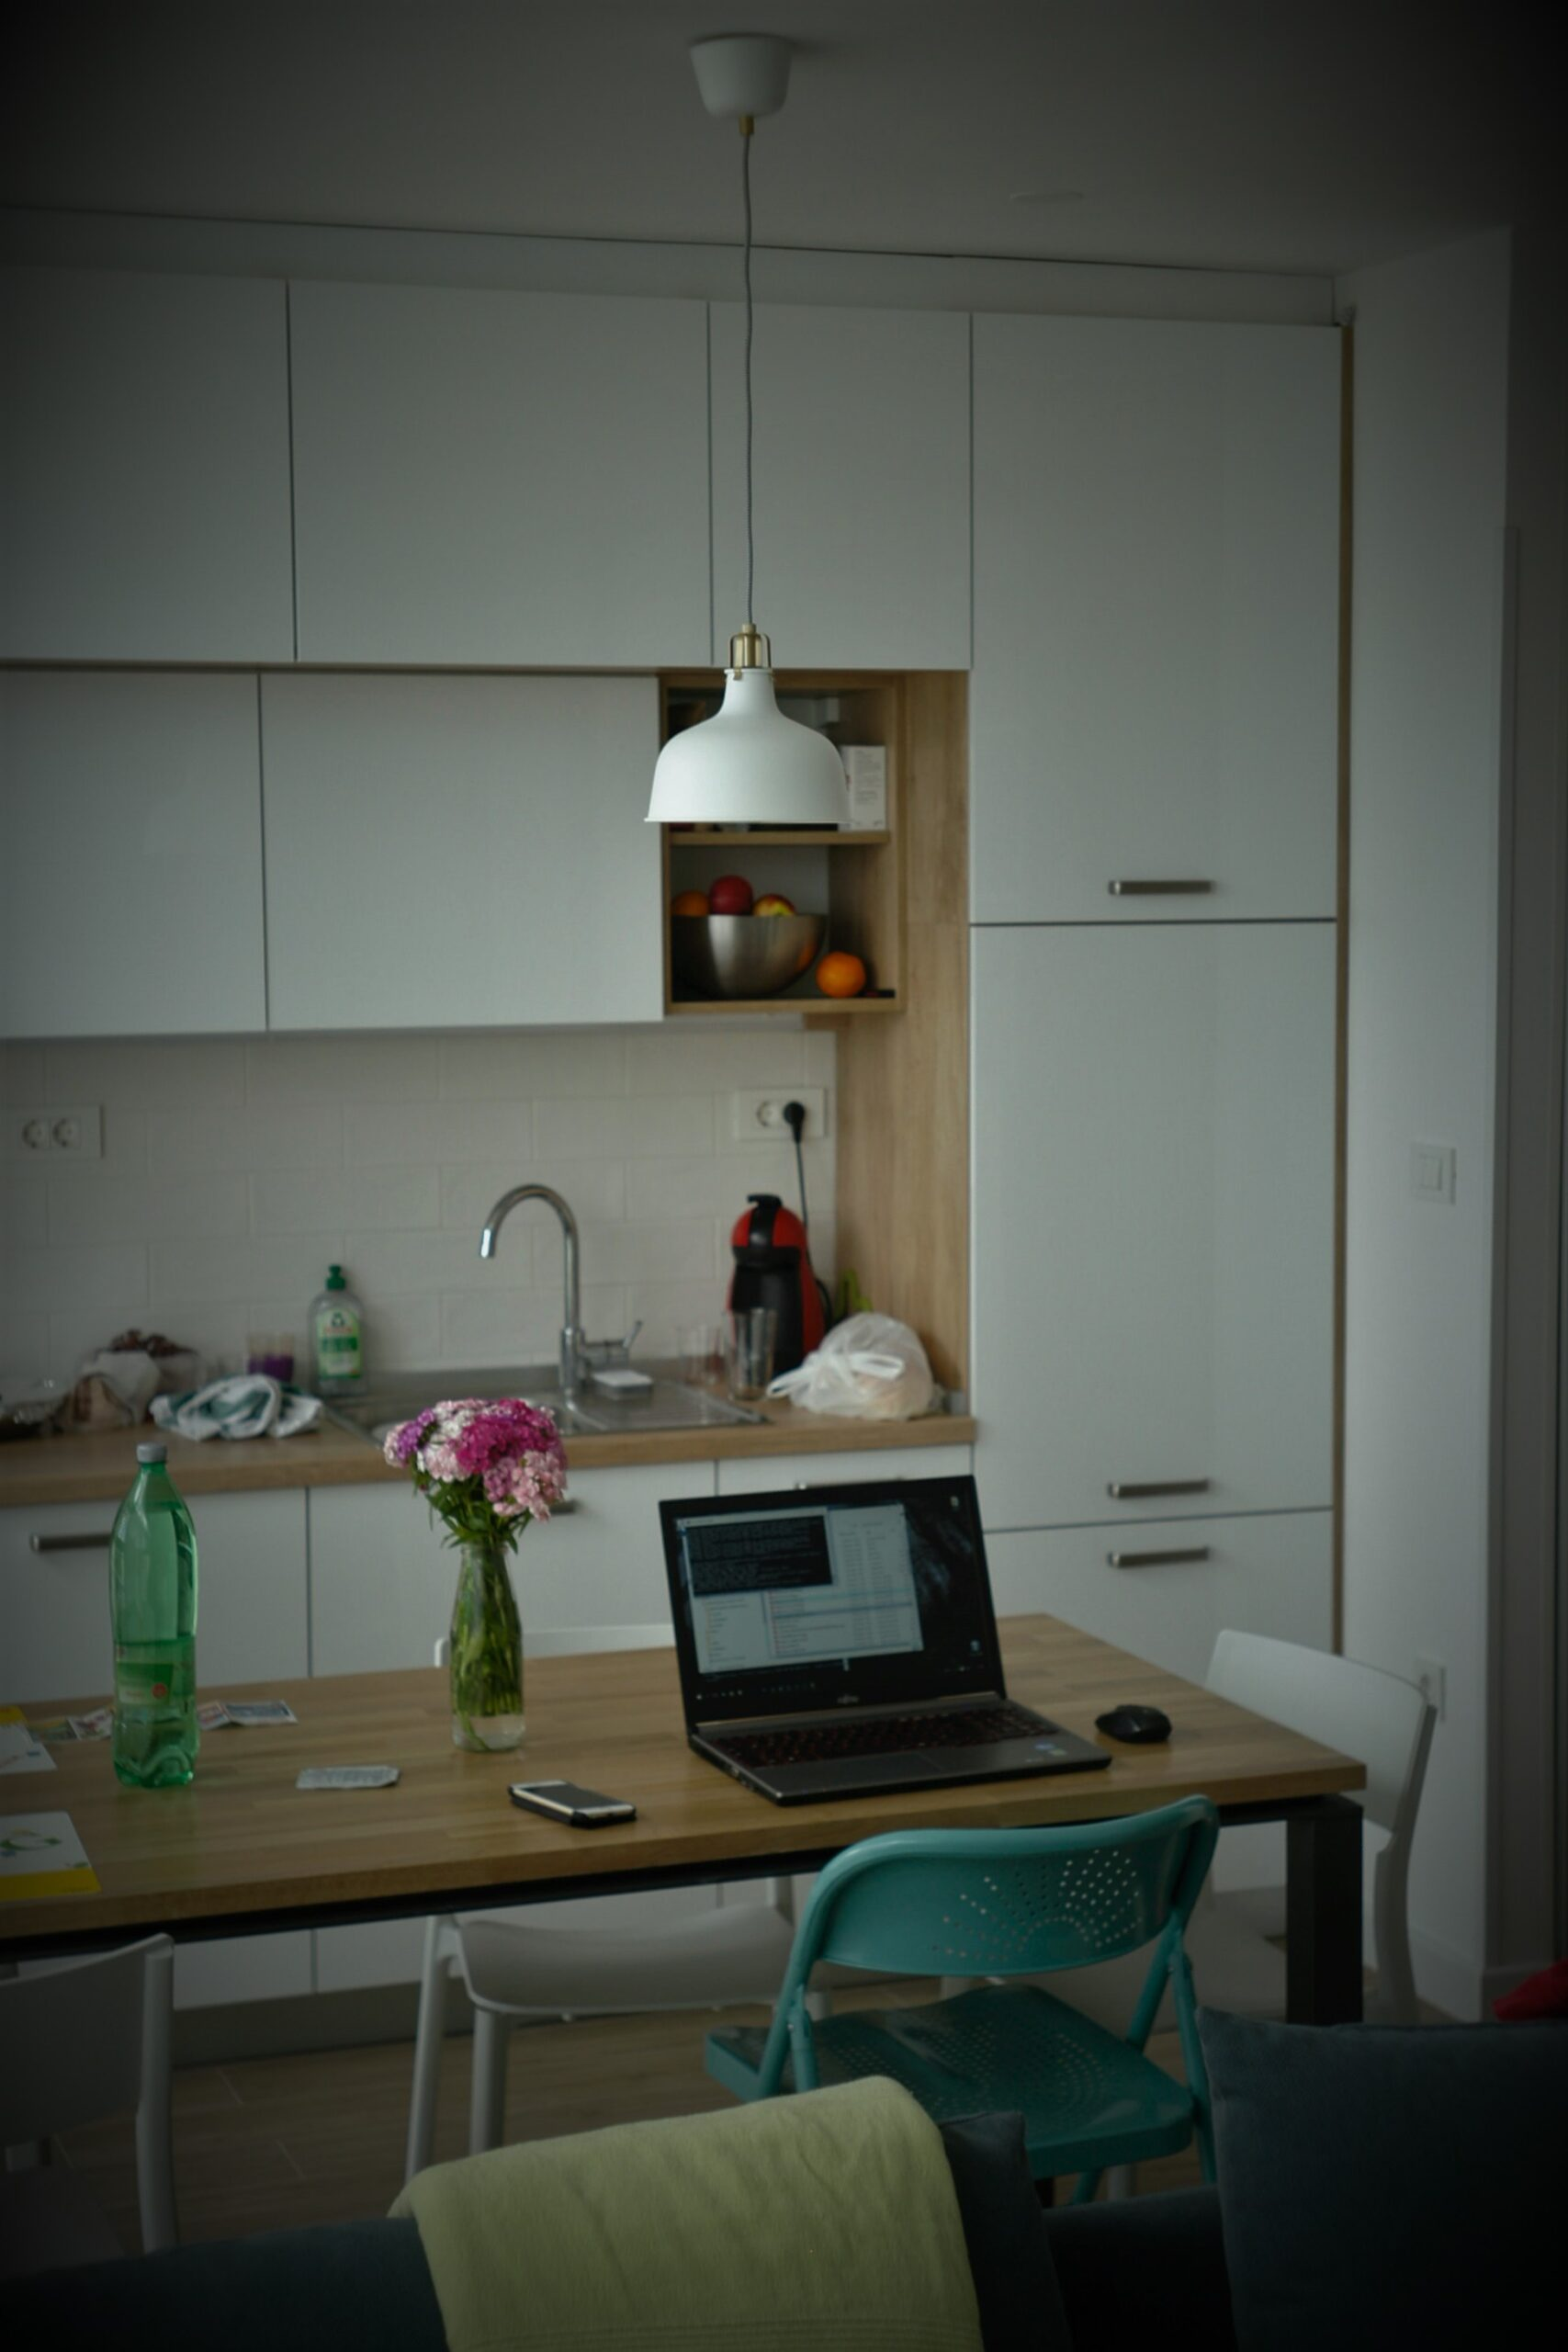 Image of poorly-lit workspace using only ceiling light. Low vision reading lamps are essential to preventing eye strain.